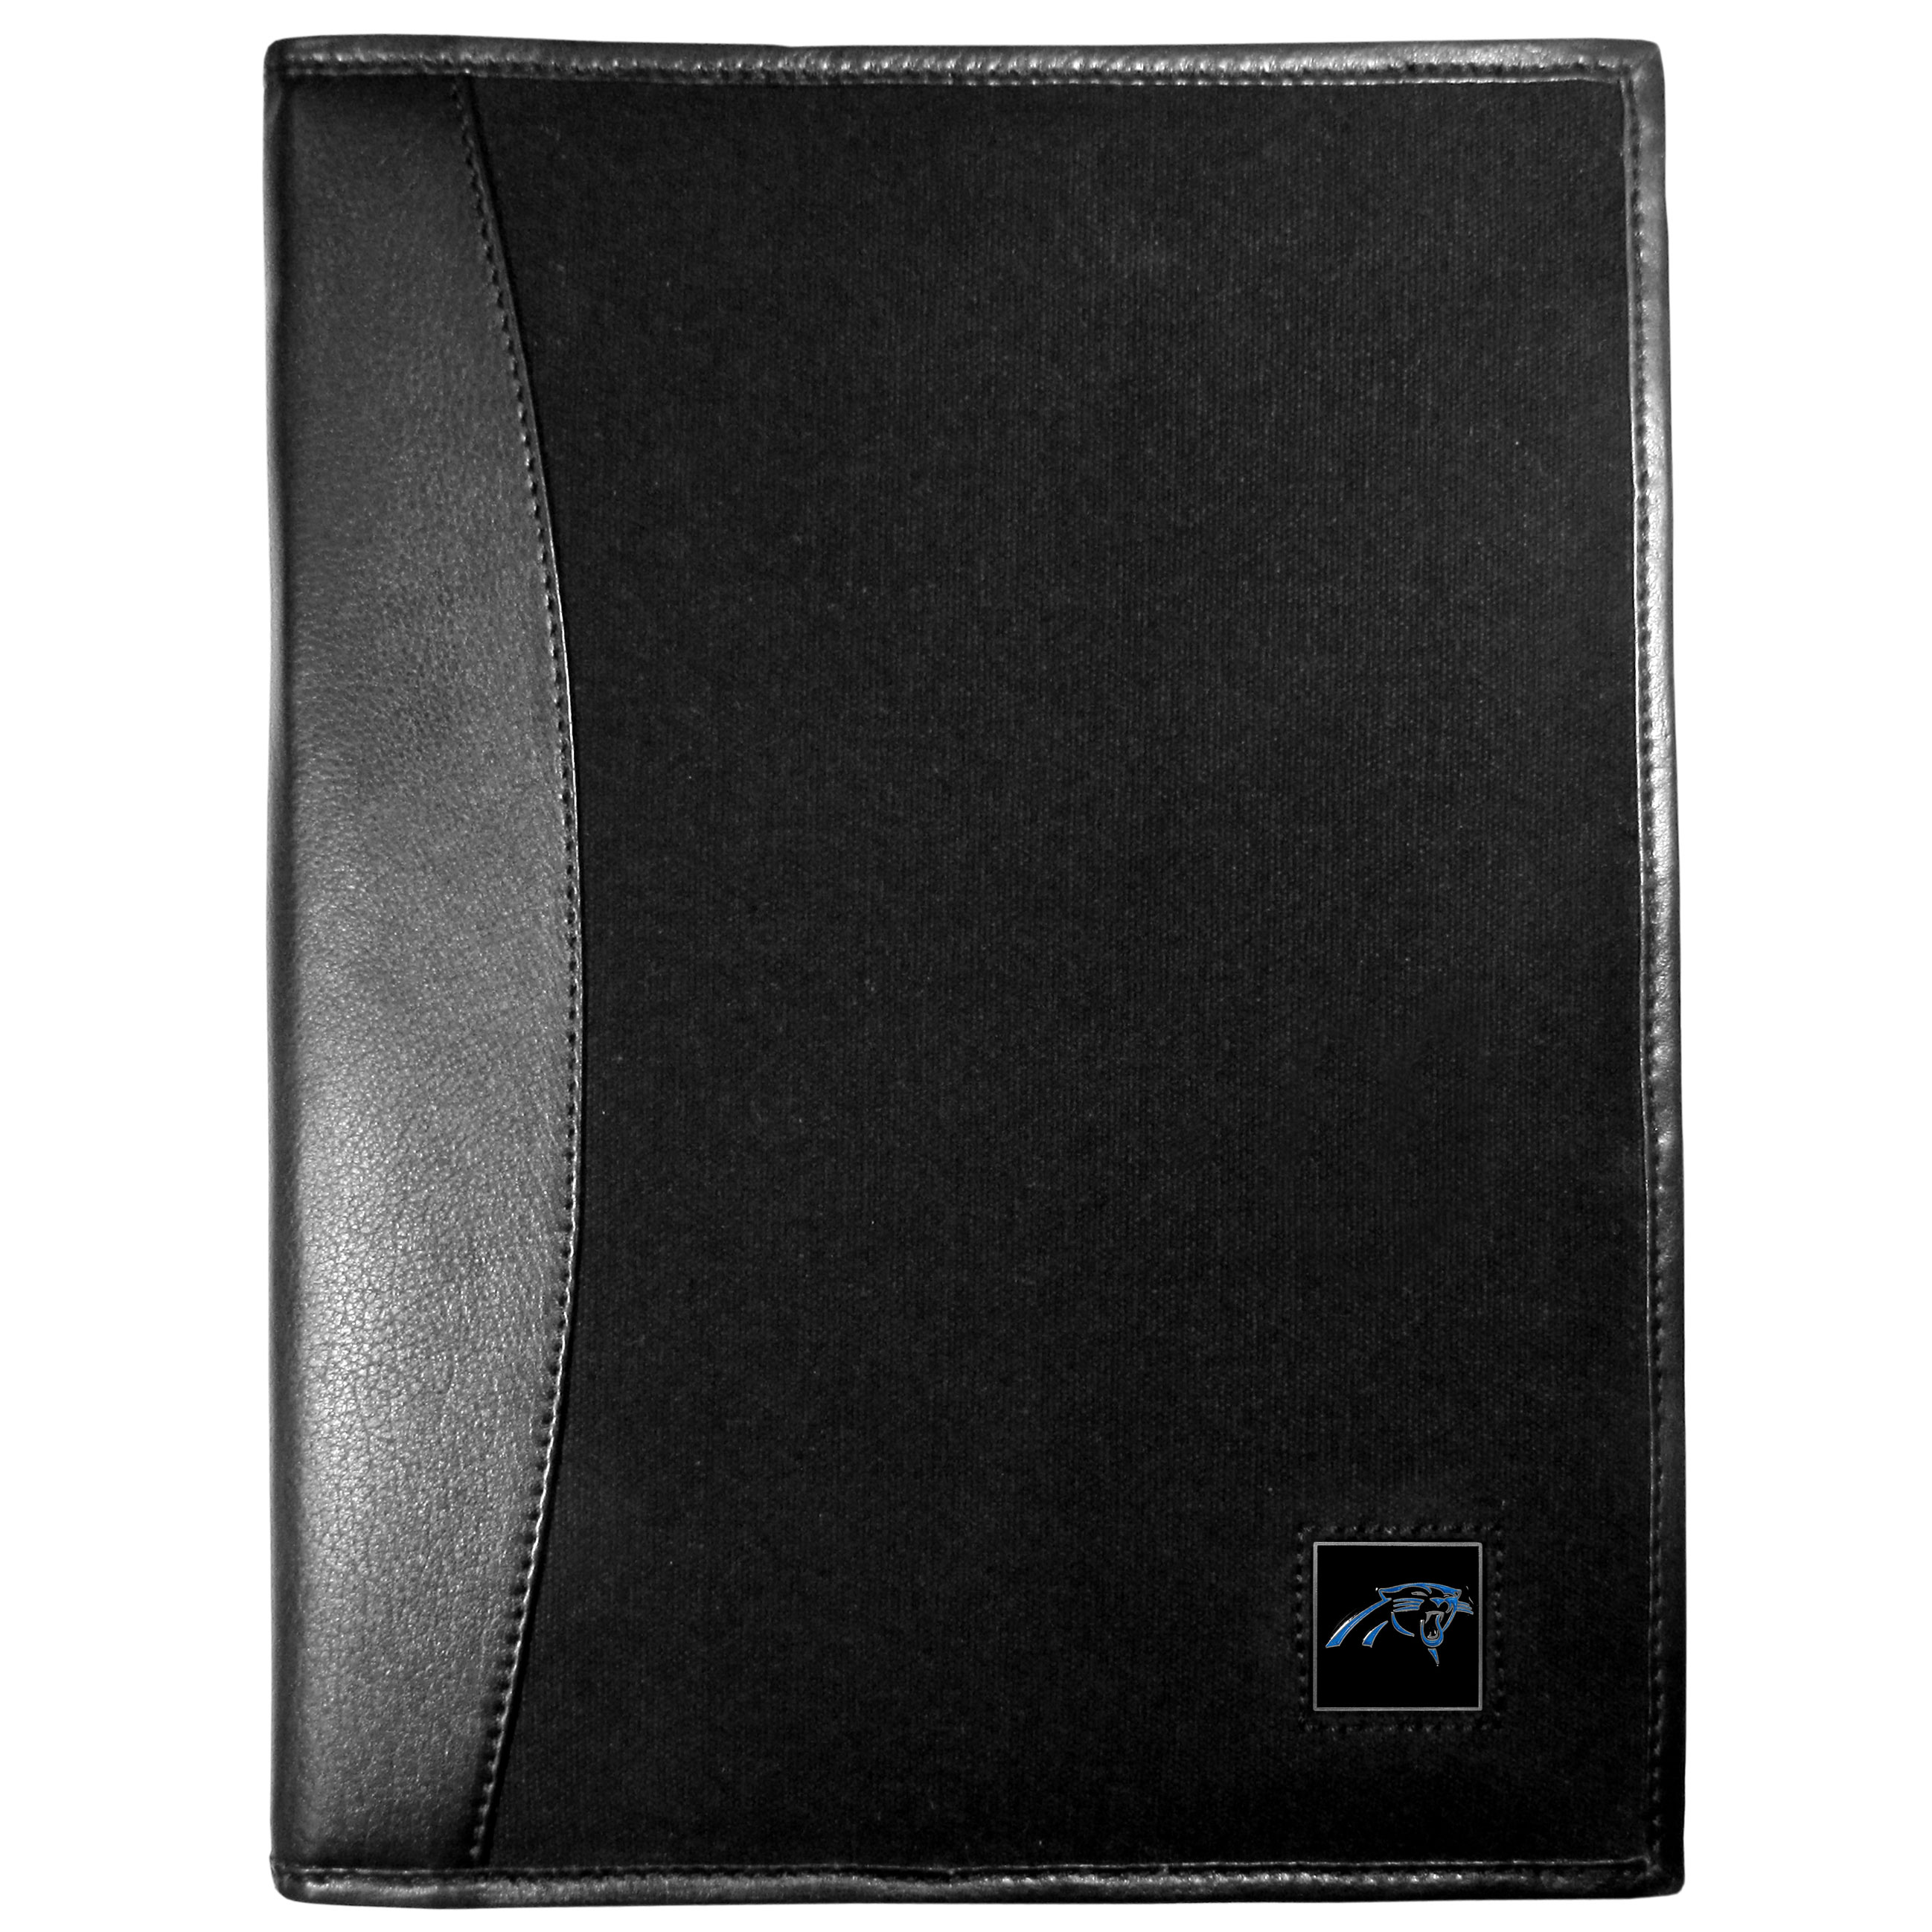 Carolina Panthers Leather and Canvas Padfolio - Our leather and canvas padfolio perfectly blends form and function. The attractive portfolio is bound in fine grain leather with an attractive canvas finish and the interior is a soft nylon. This high quality business accessory also features a fully cast metal Carolina Panthers emblem that is subtly set in the corner of the organizer. It is packed with features like 6 card slots for badges, business cards, hotel keys or credit cards and ID with a large pocket for loose papers and a writing tablet slot making it a must-have for the professional on the go.